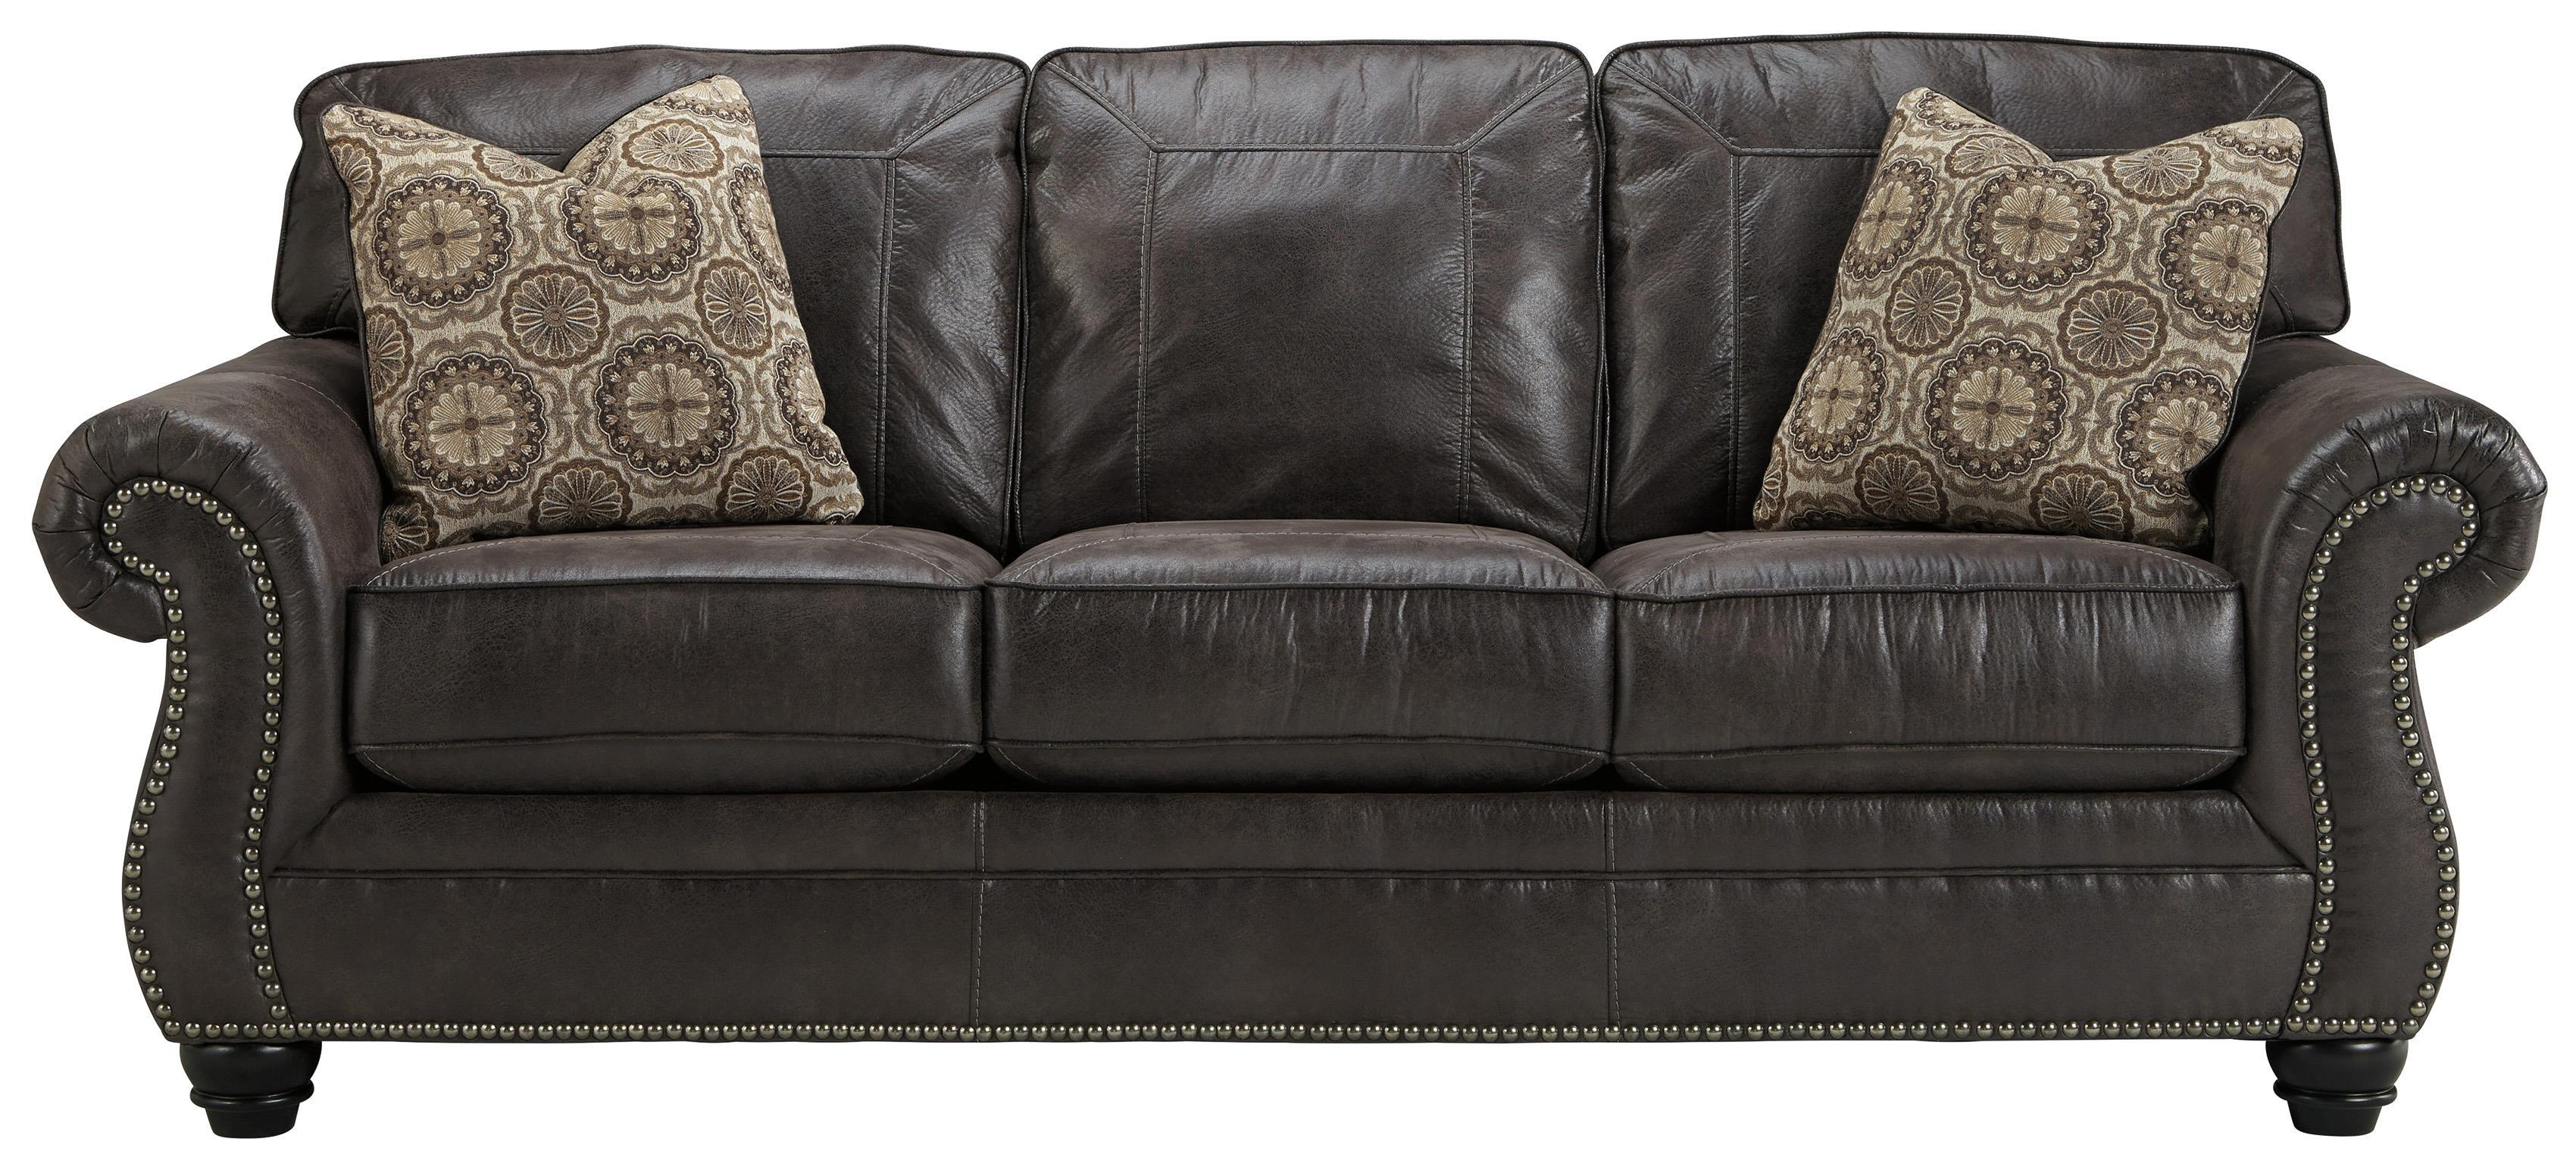 20 Inspirations Faux Leather Sleeper Sofas Sofa Ideas